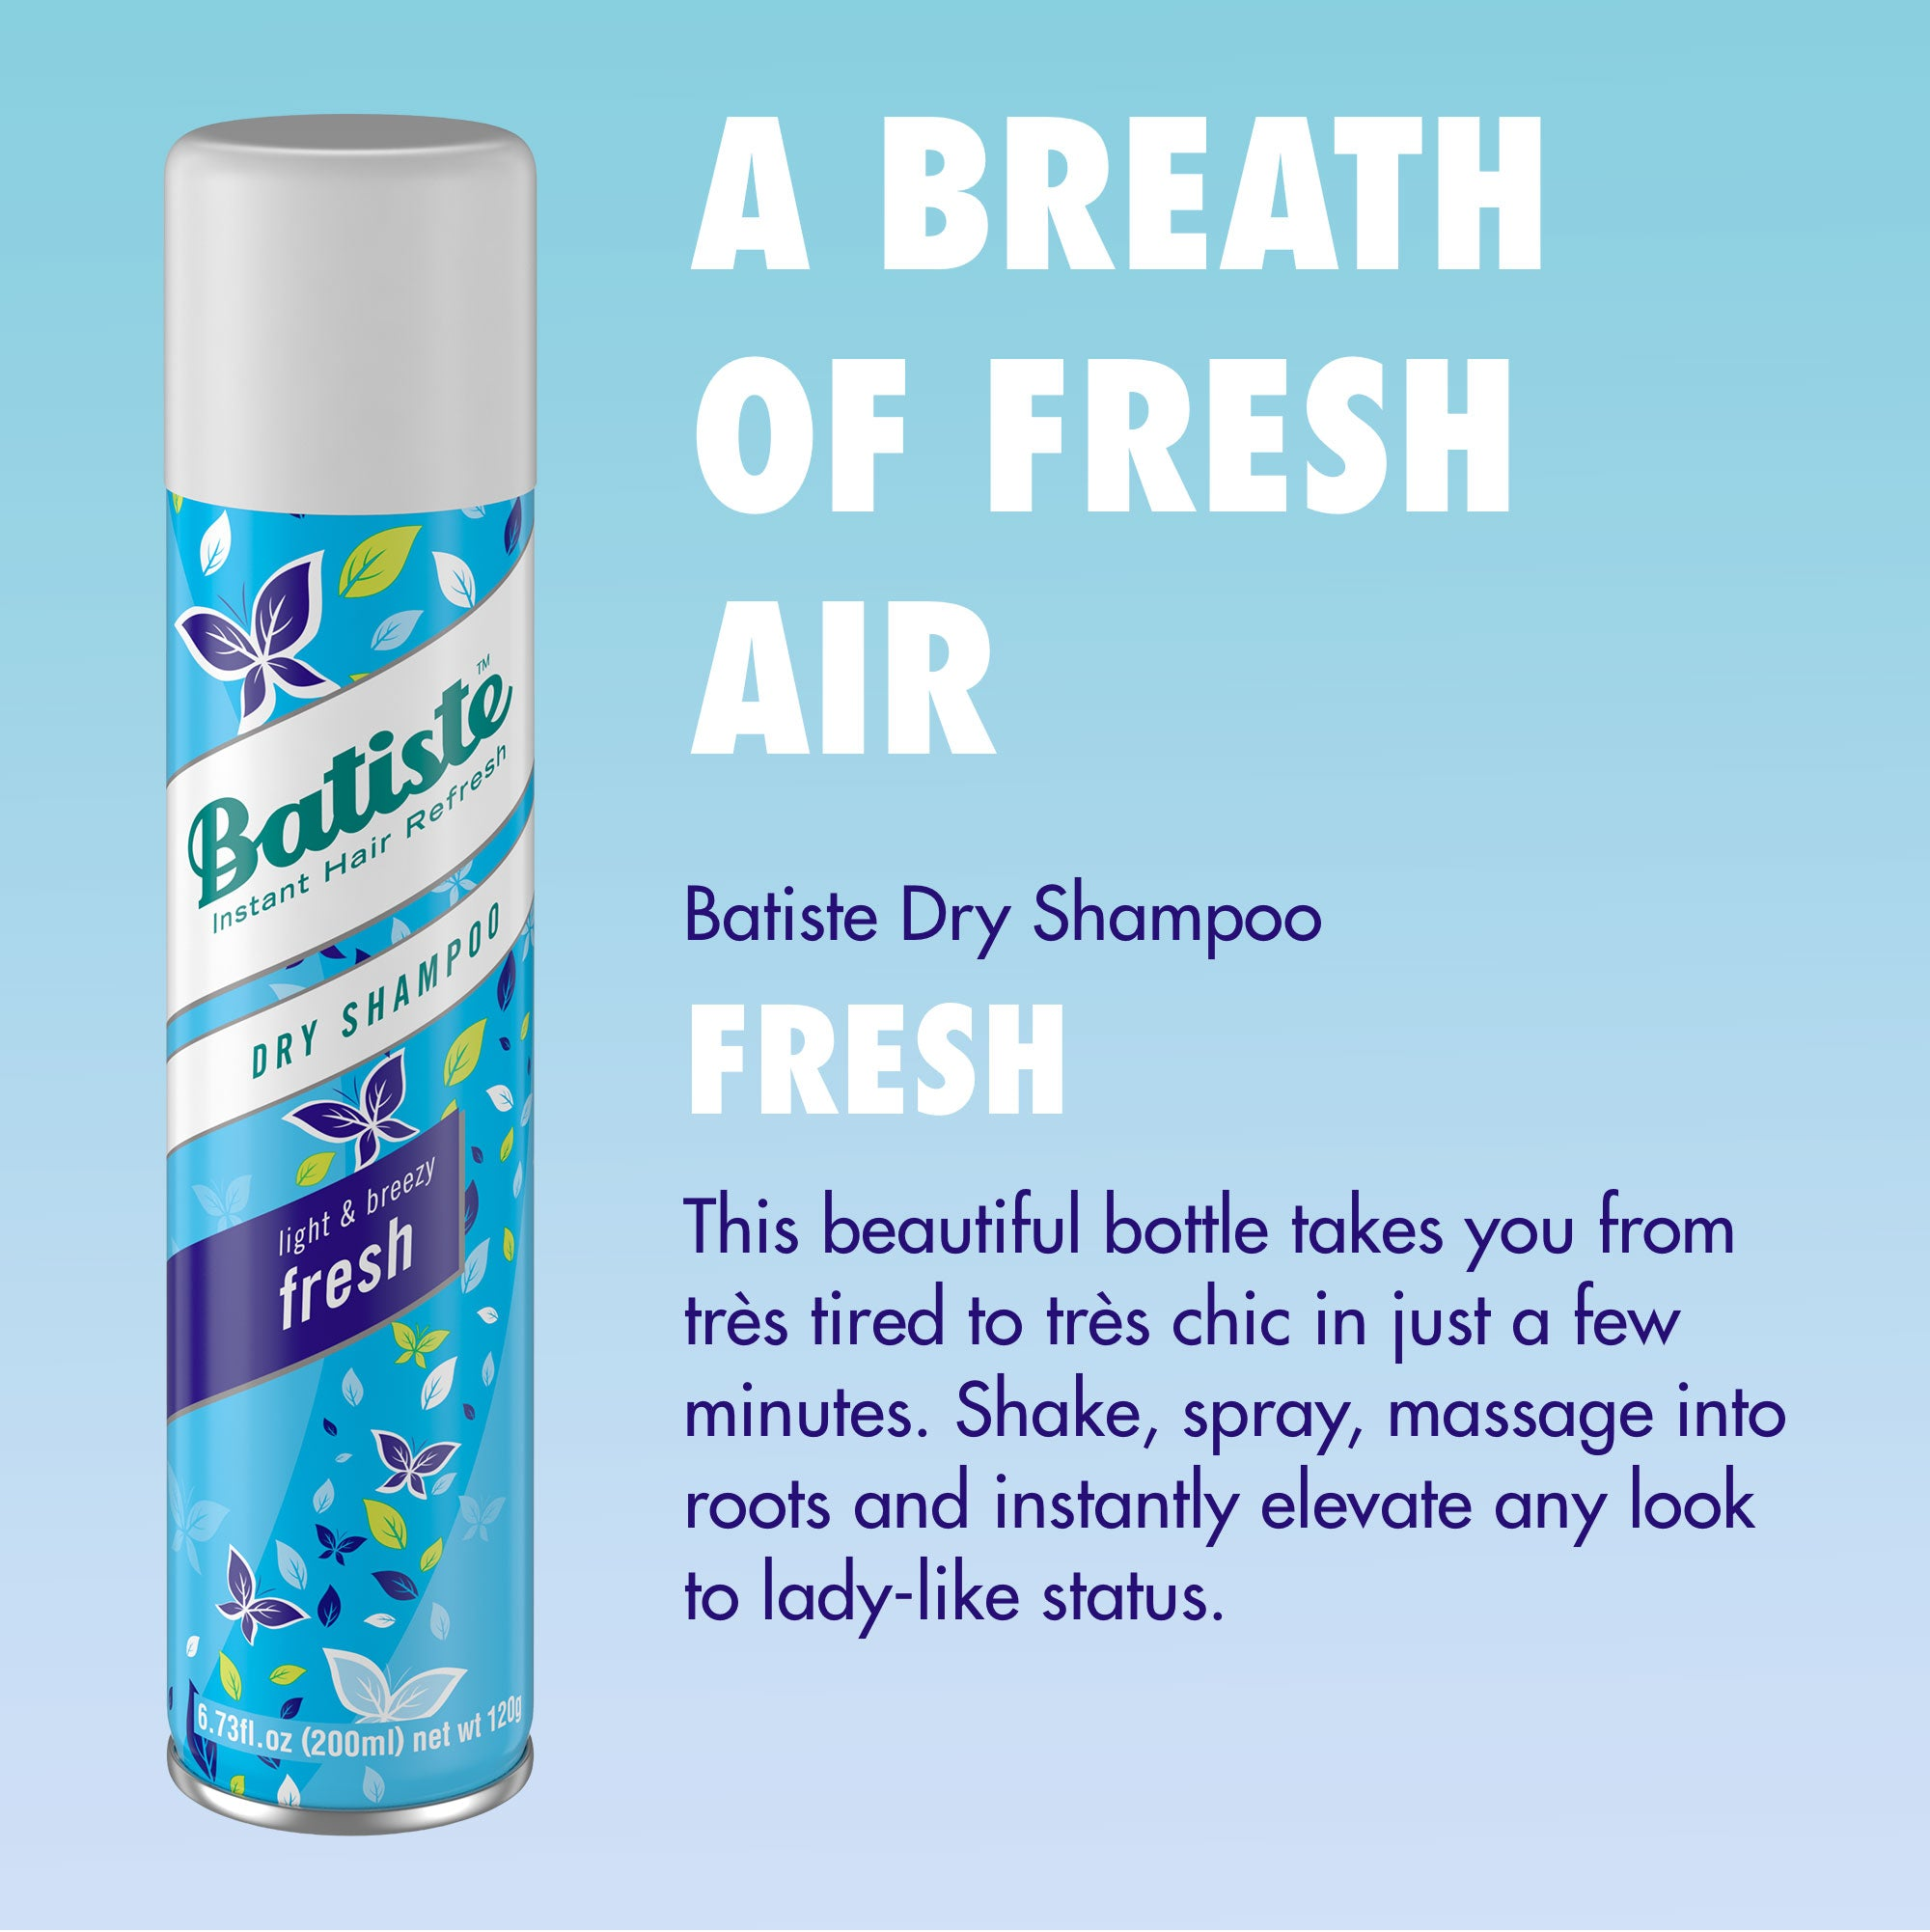 Batiste Dry Shampoo Light & Breezy Fresh